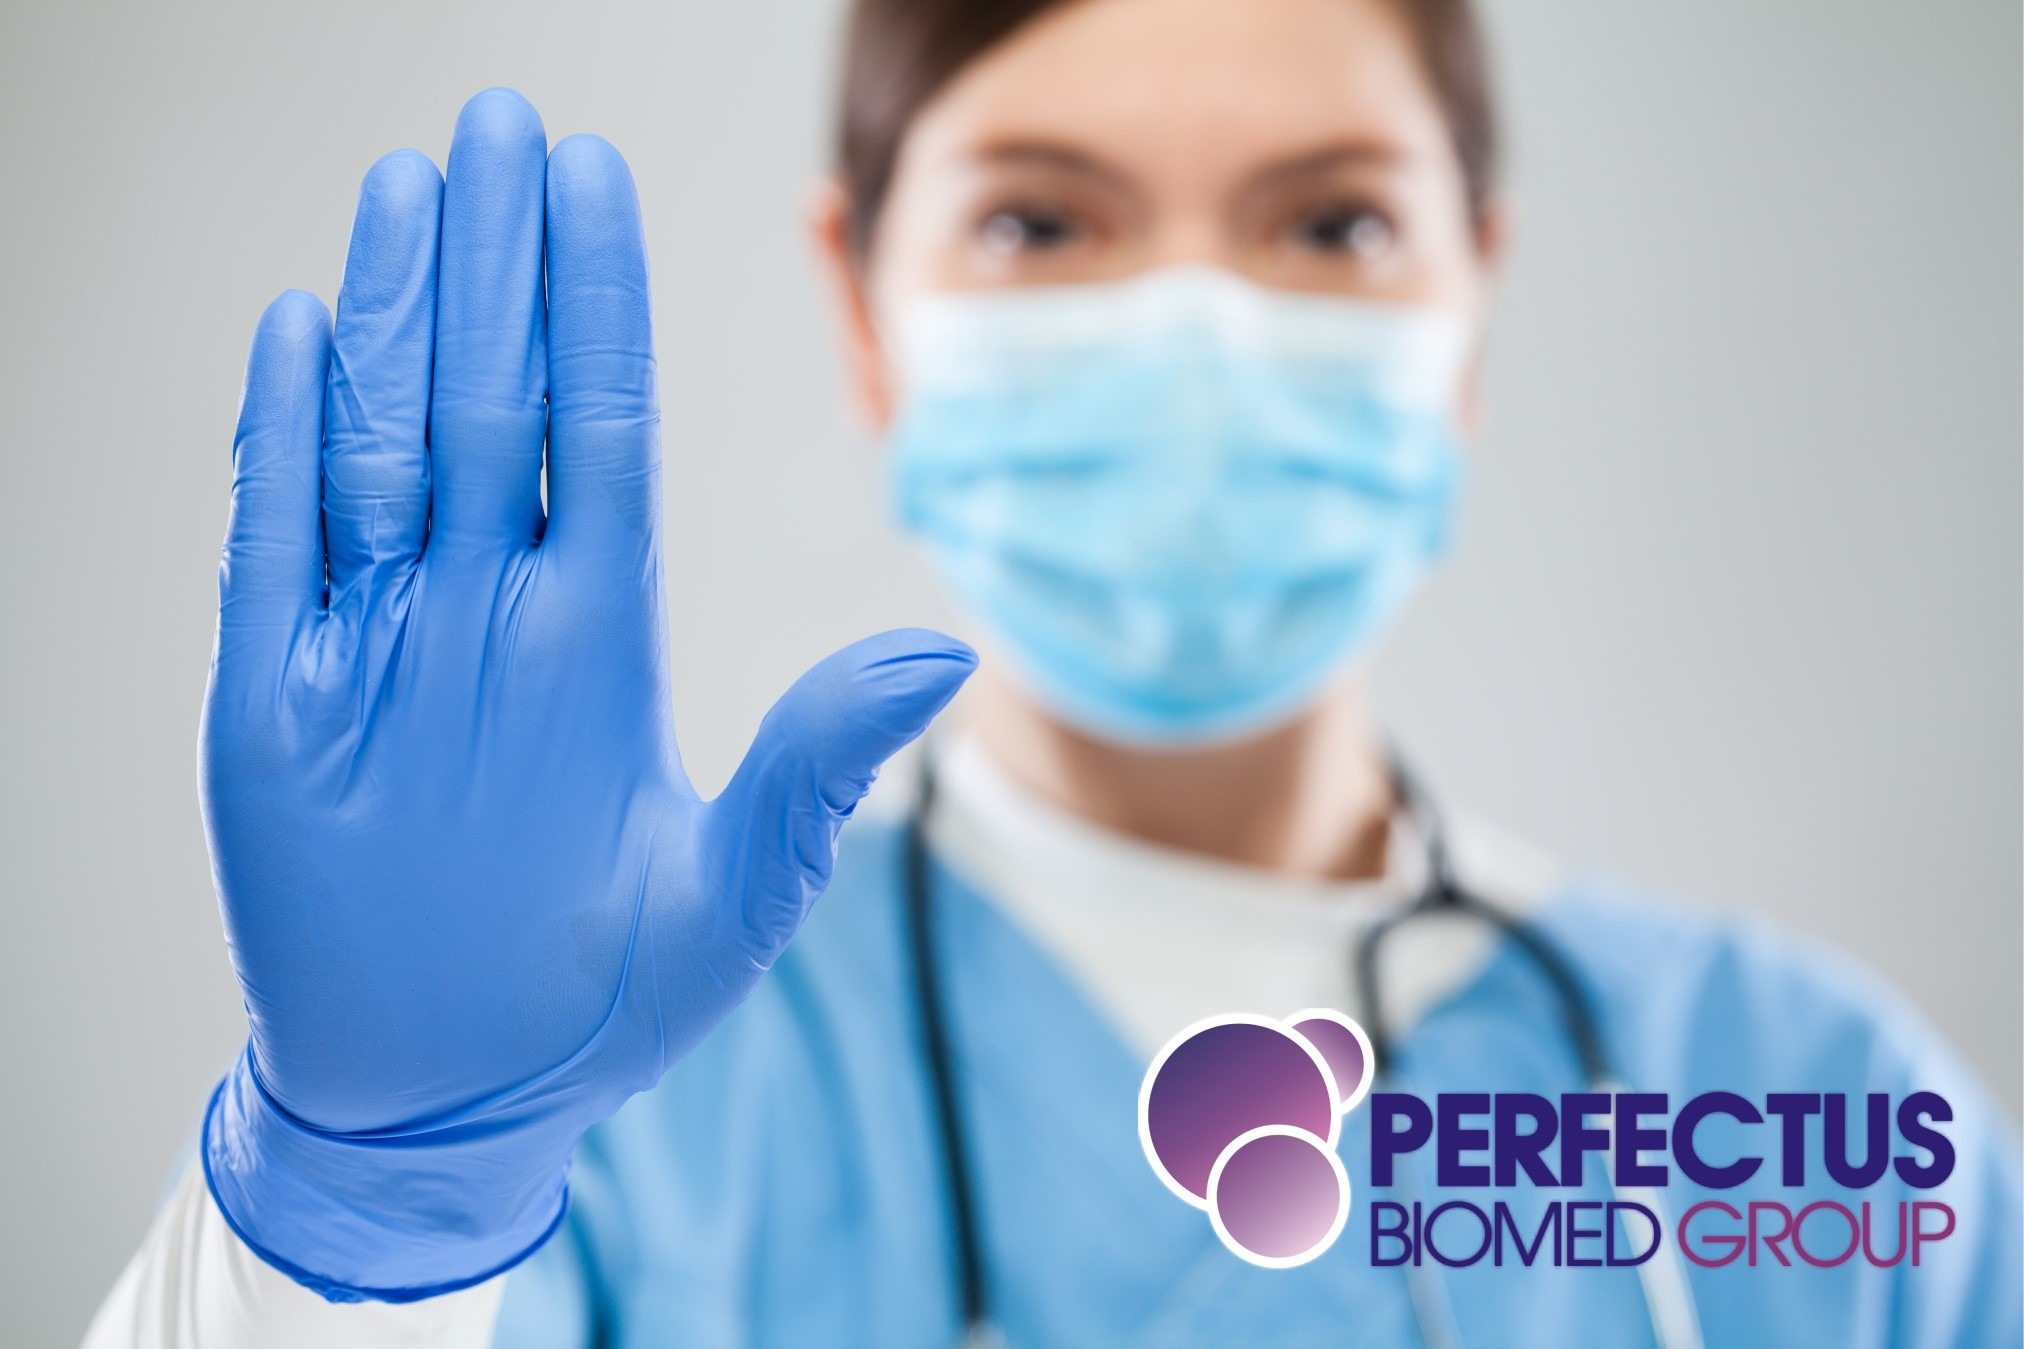 Alternatives to clinical studies from Perfectus Biomed